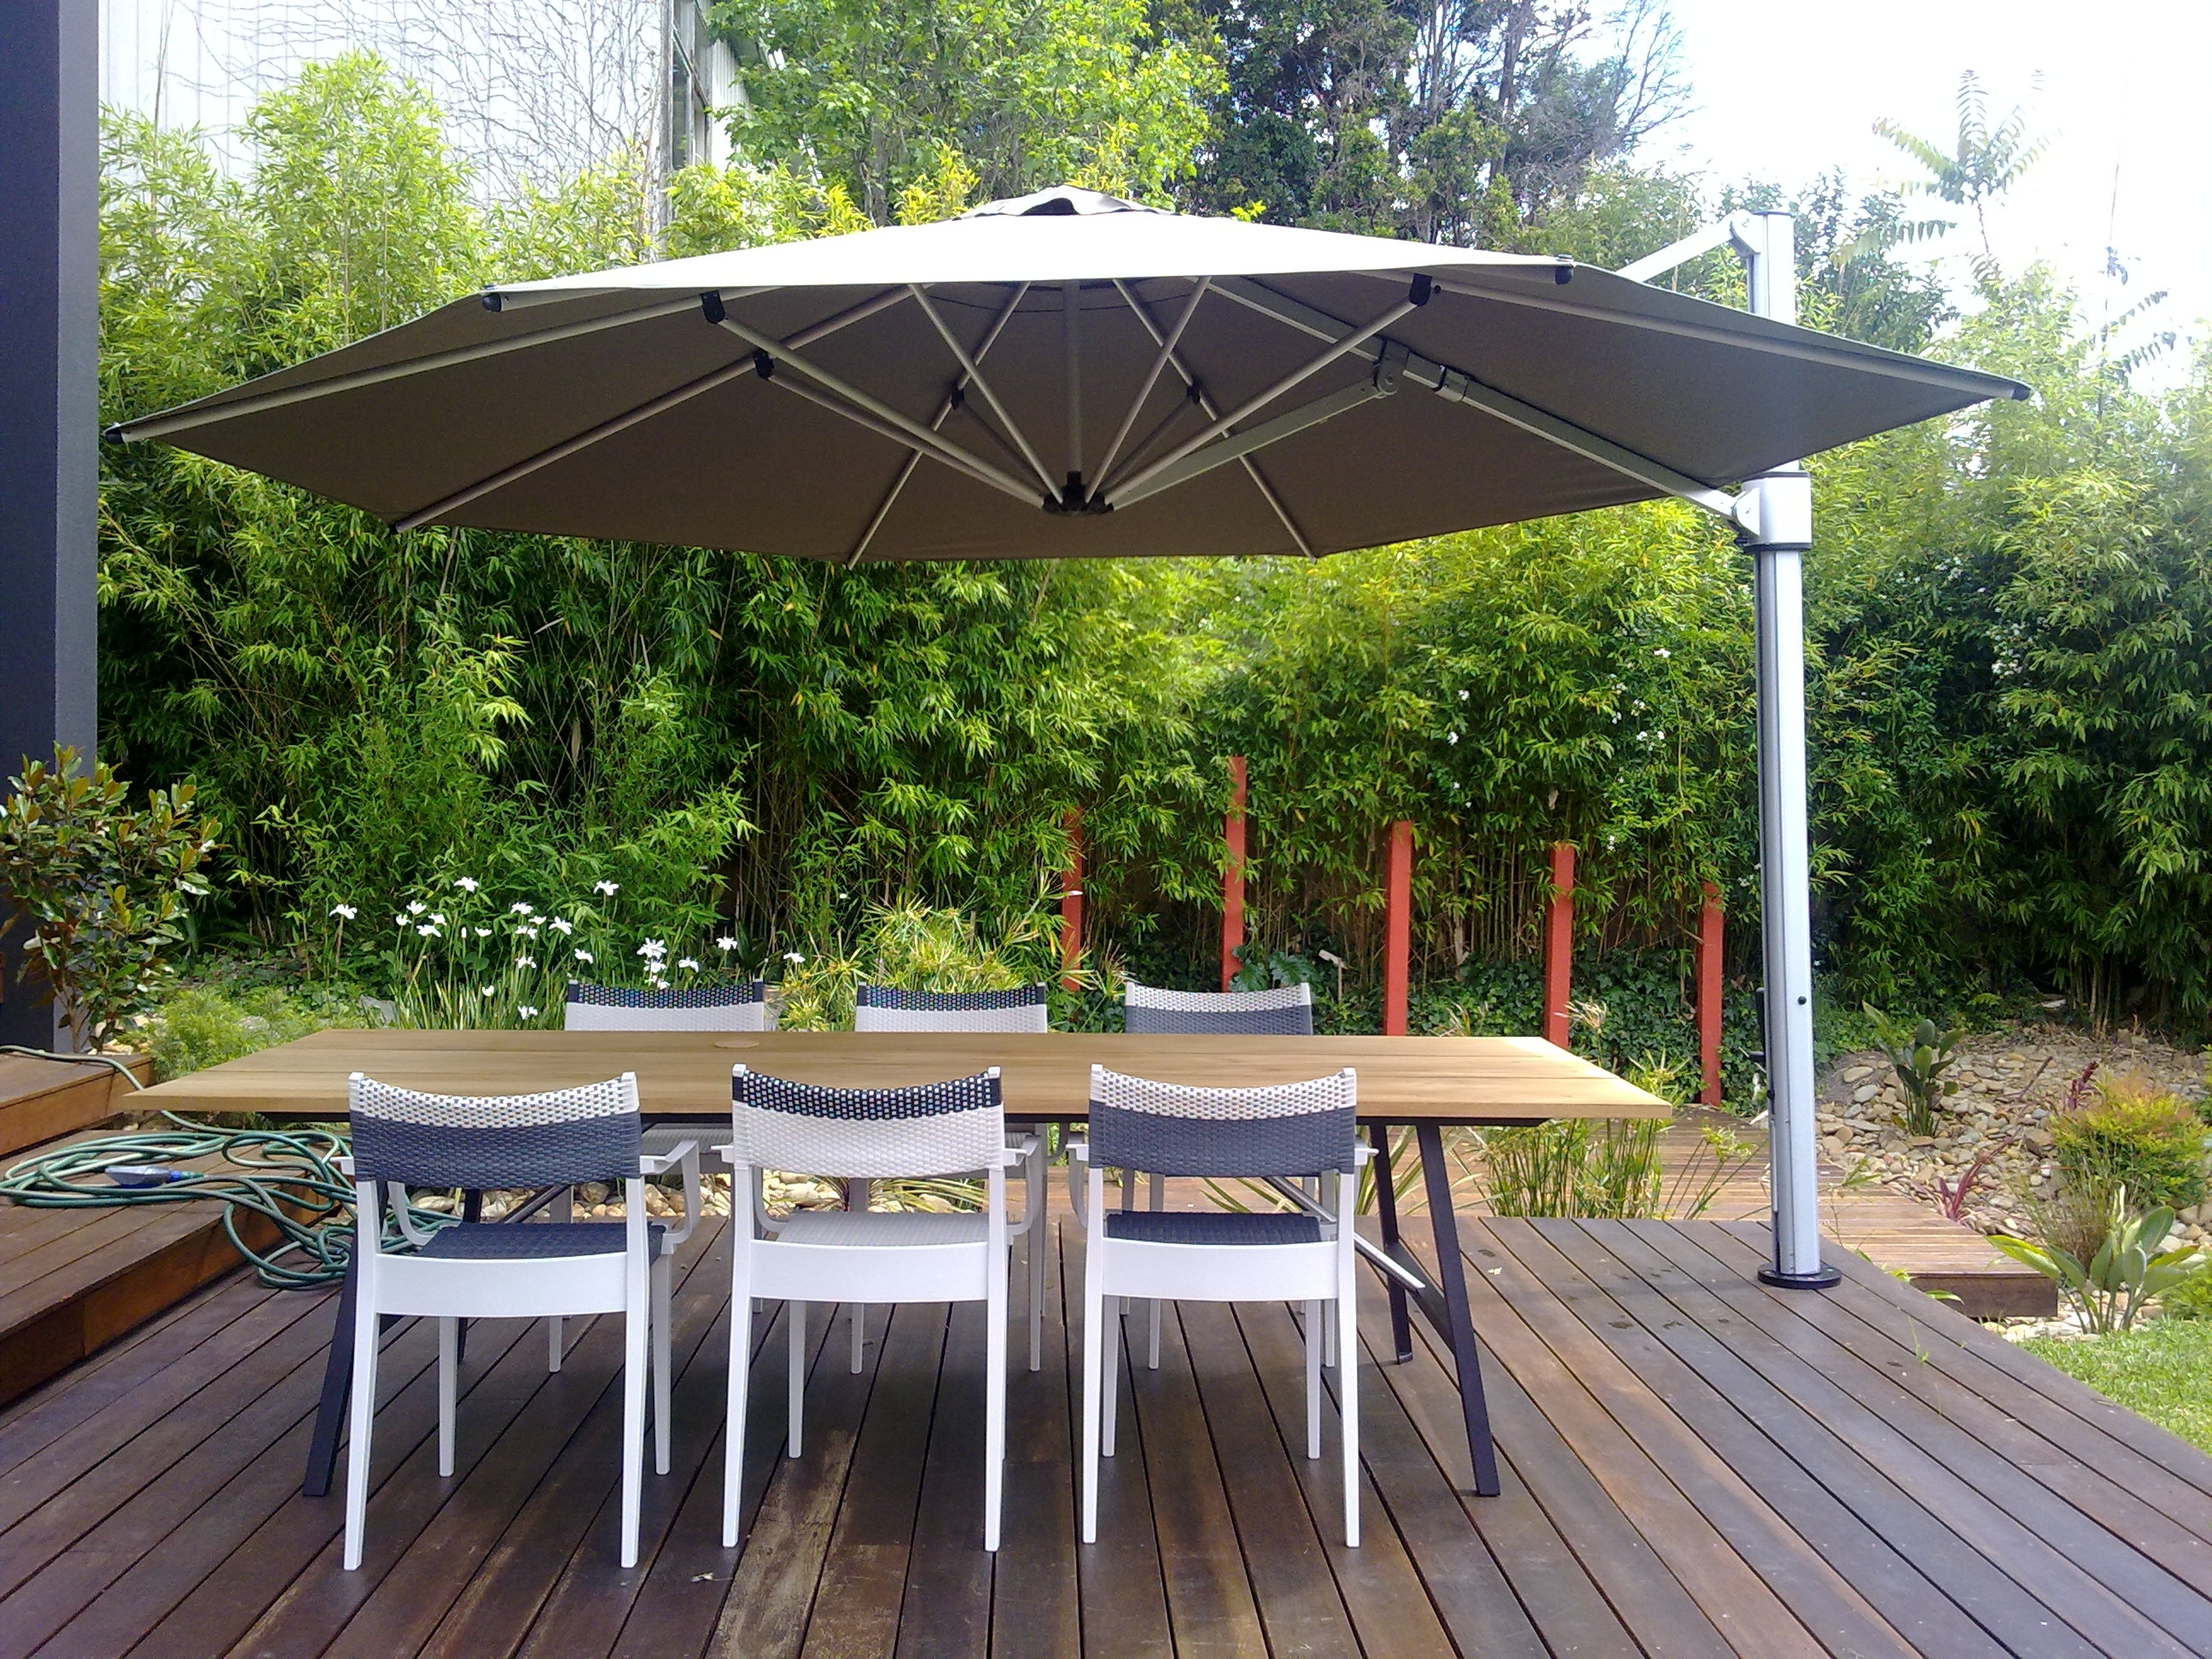 Eclipse Patio Umbrellas Regarding Well Known 4M Octagonal Eclipse Cantilever Umbrella – Instant Shade Umbrellas (View 10 of 20)